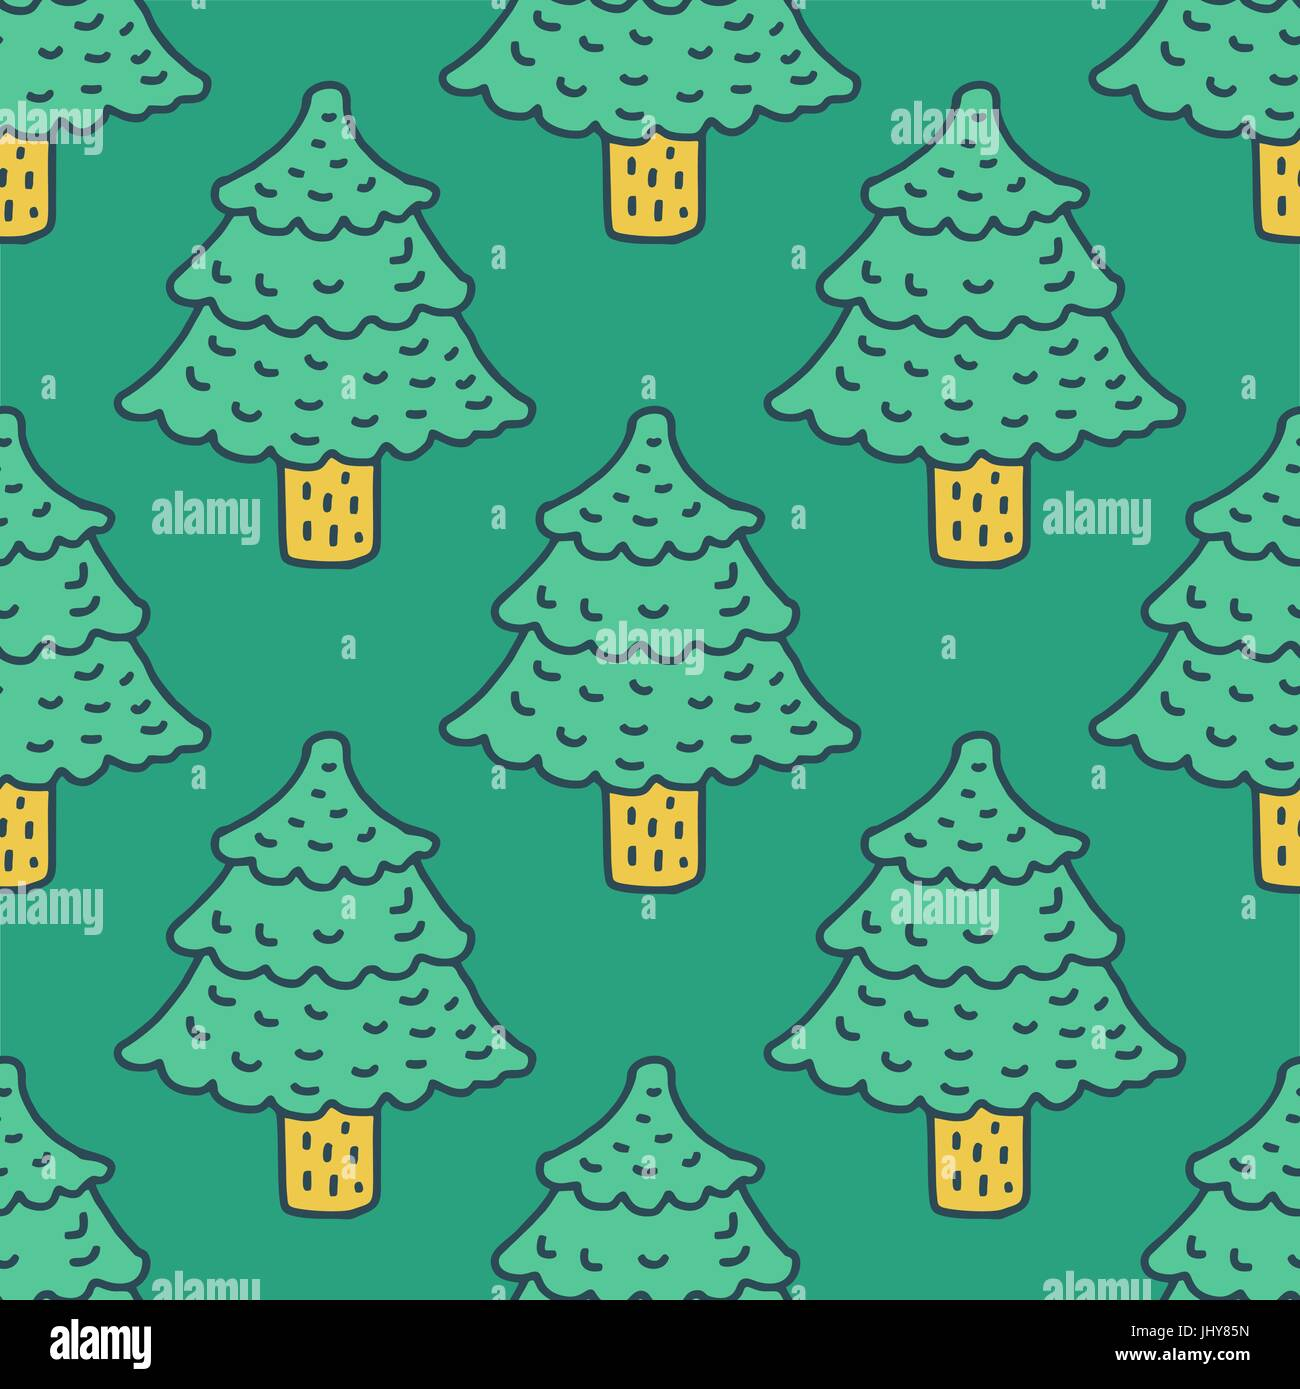 Christmas tree drawing pattern. Fir cartoon style. spruce